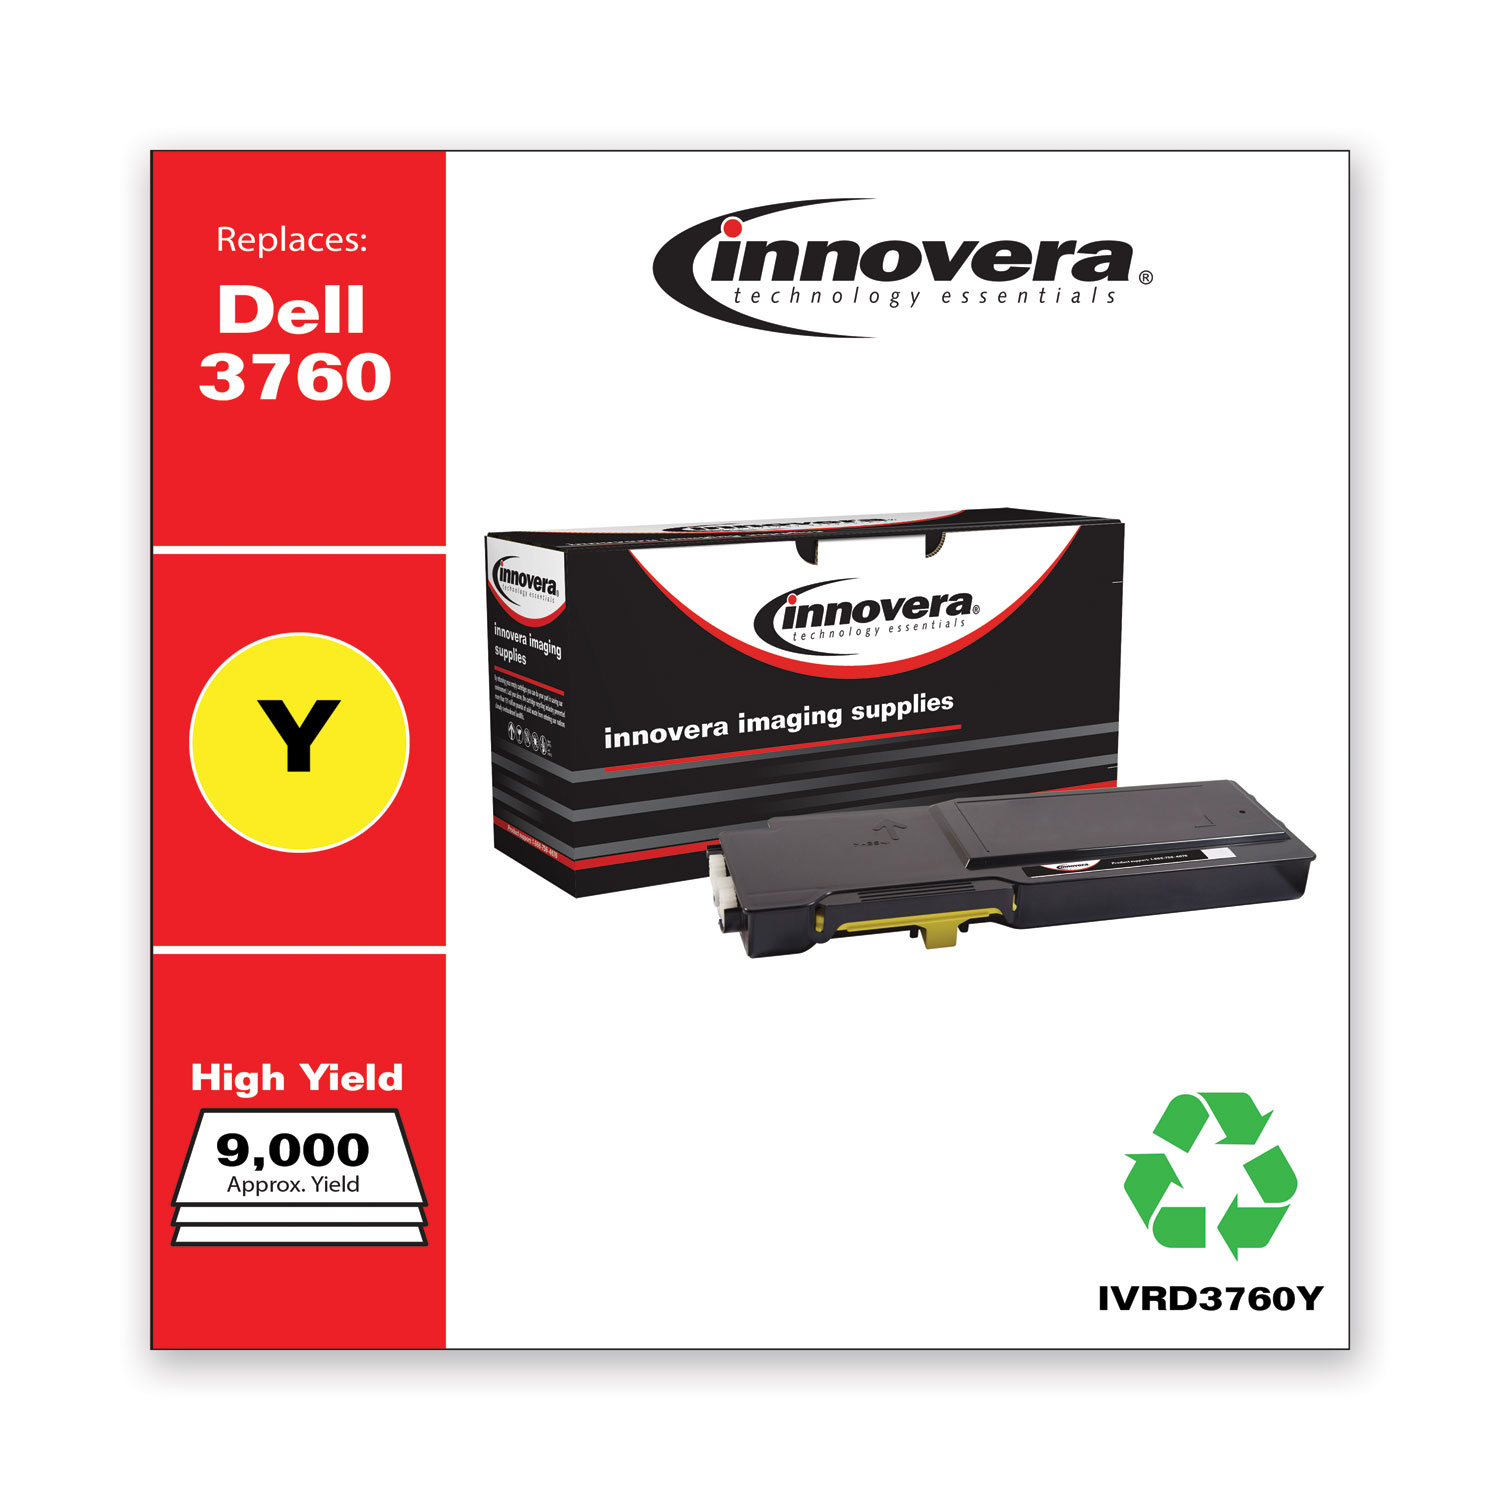 Remanufactured Yellow Toner, Replacement for Dell C3760 (331-8430), 9,000 Page-Yield IVRD3760Y